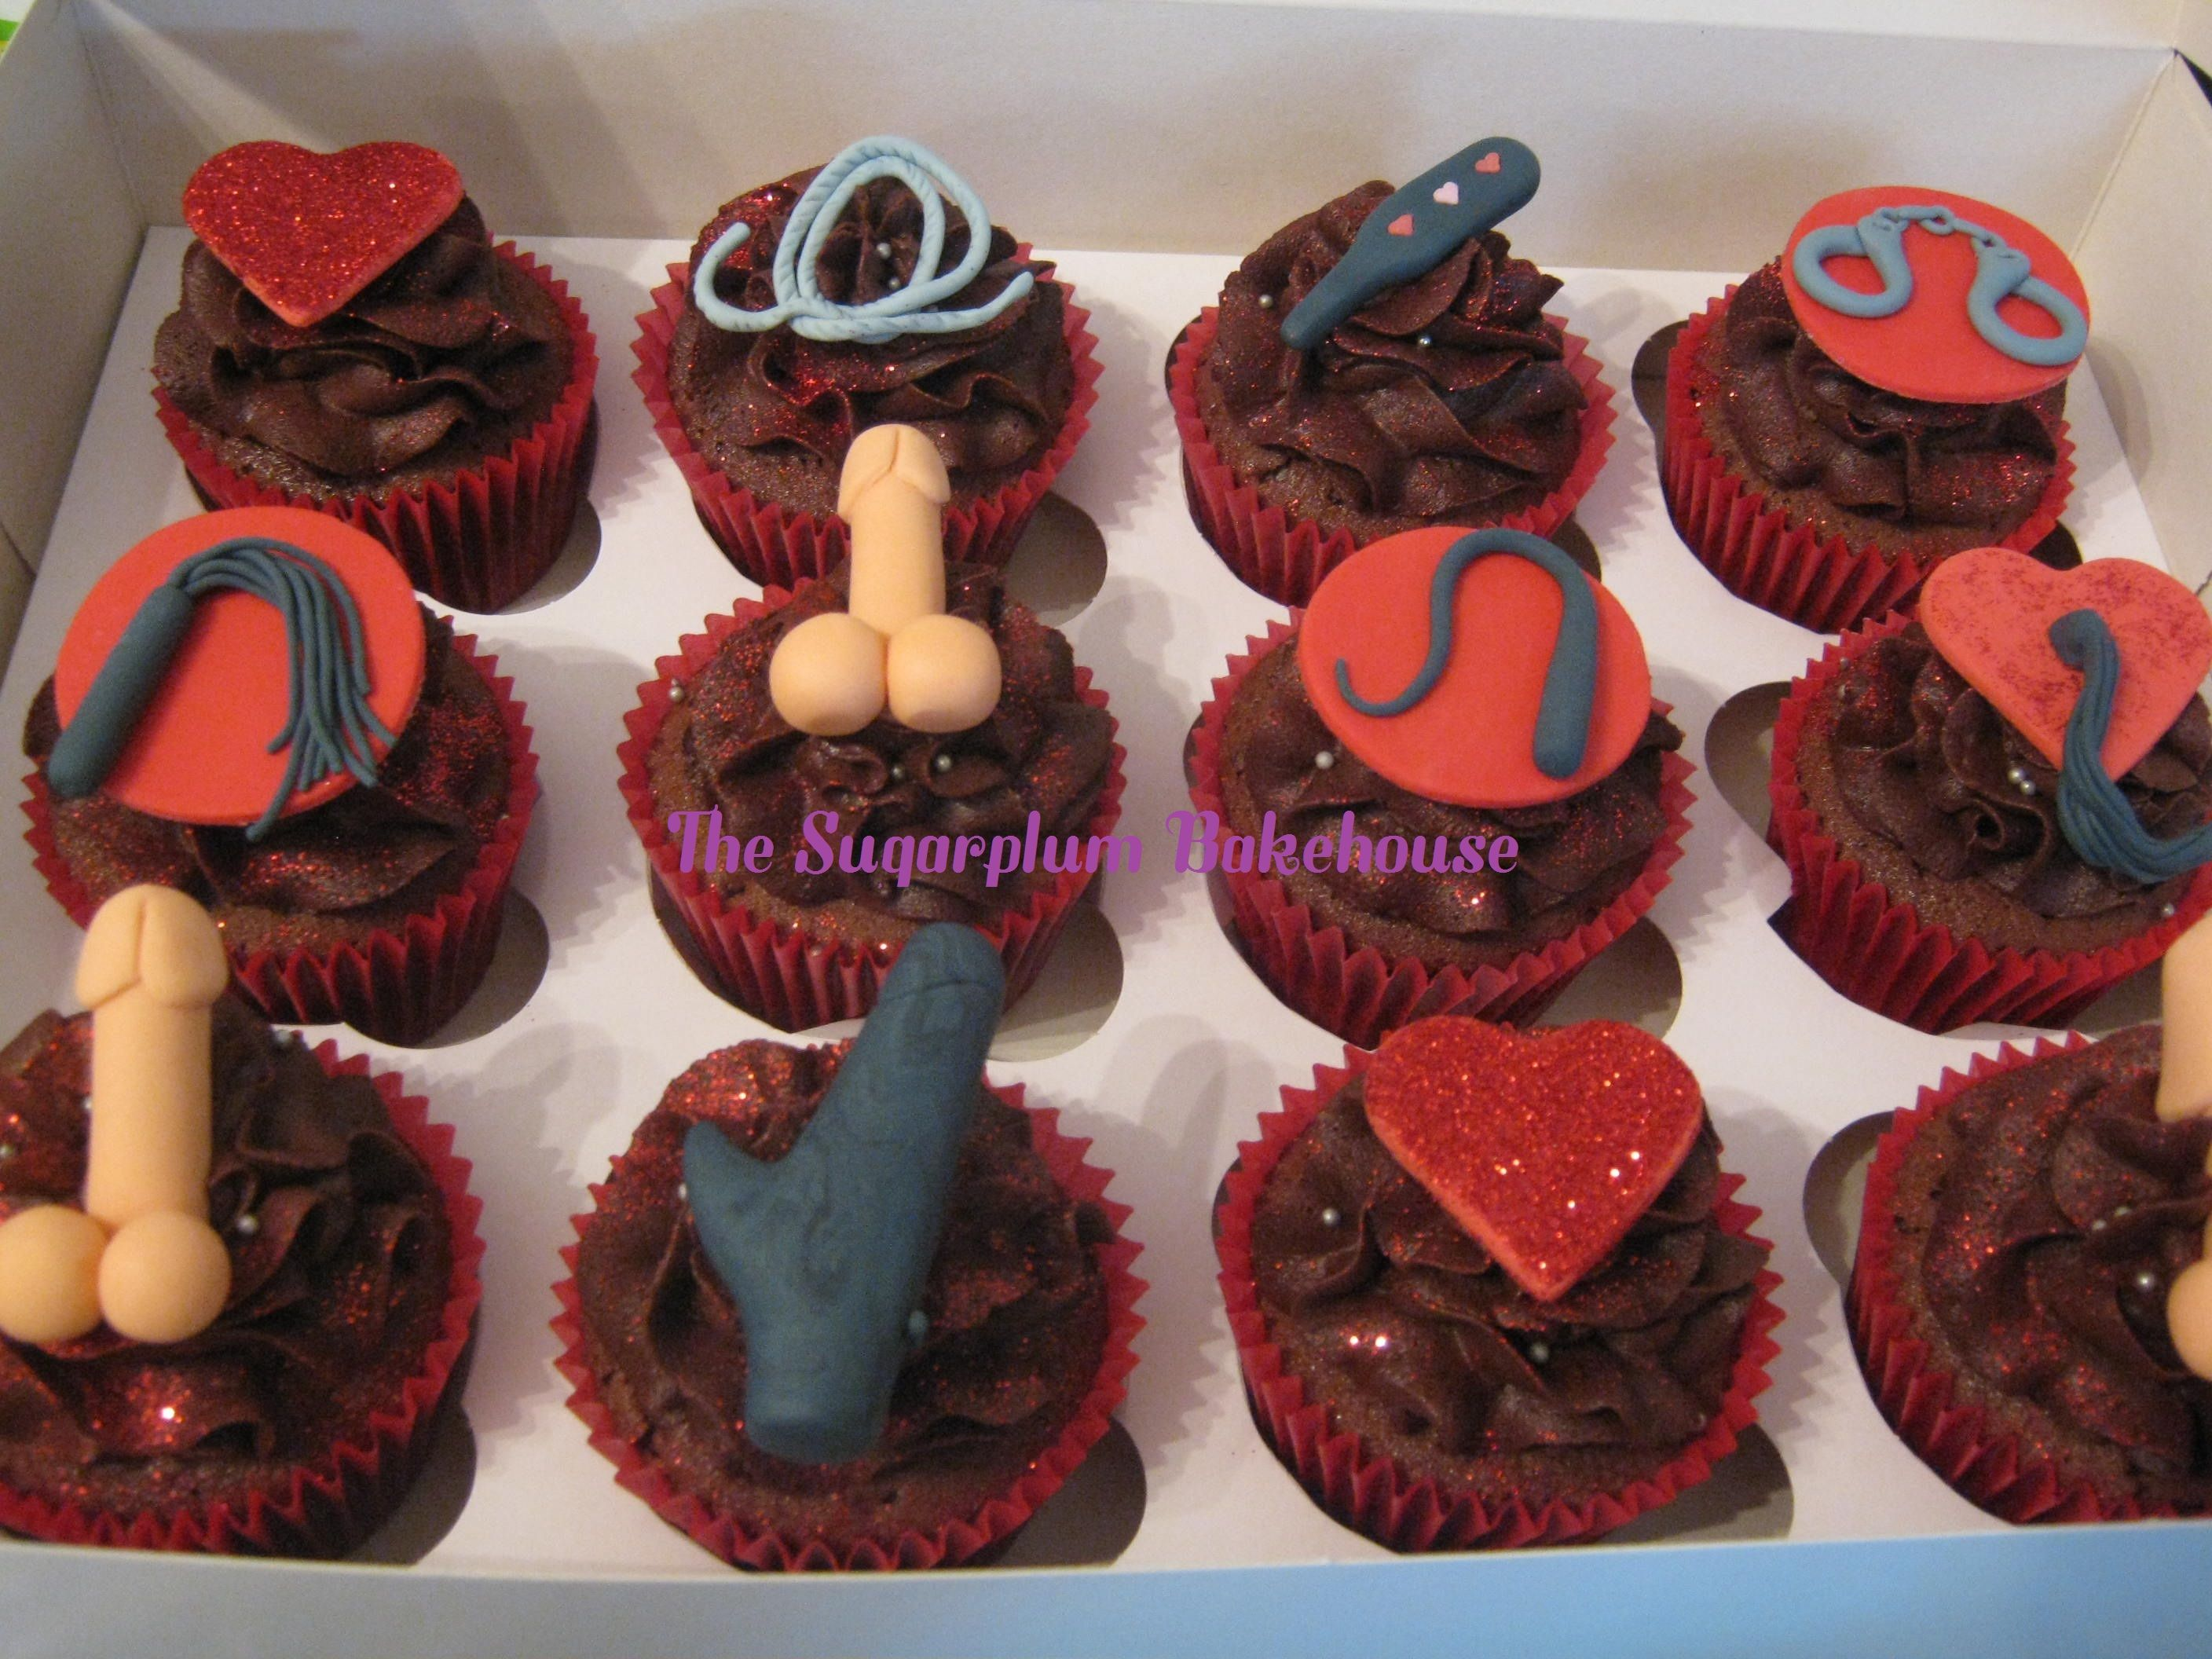 Naughty Ann Summers Cupcakes More At Facebook Summer CupcakesAdult Party IdeasAnn